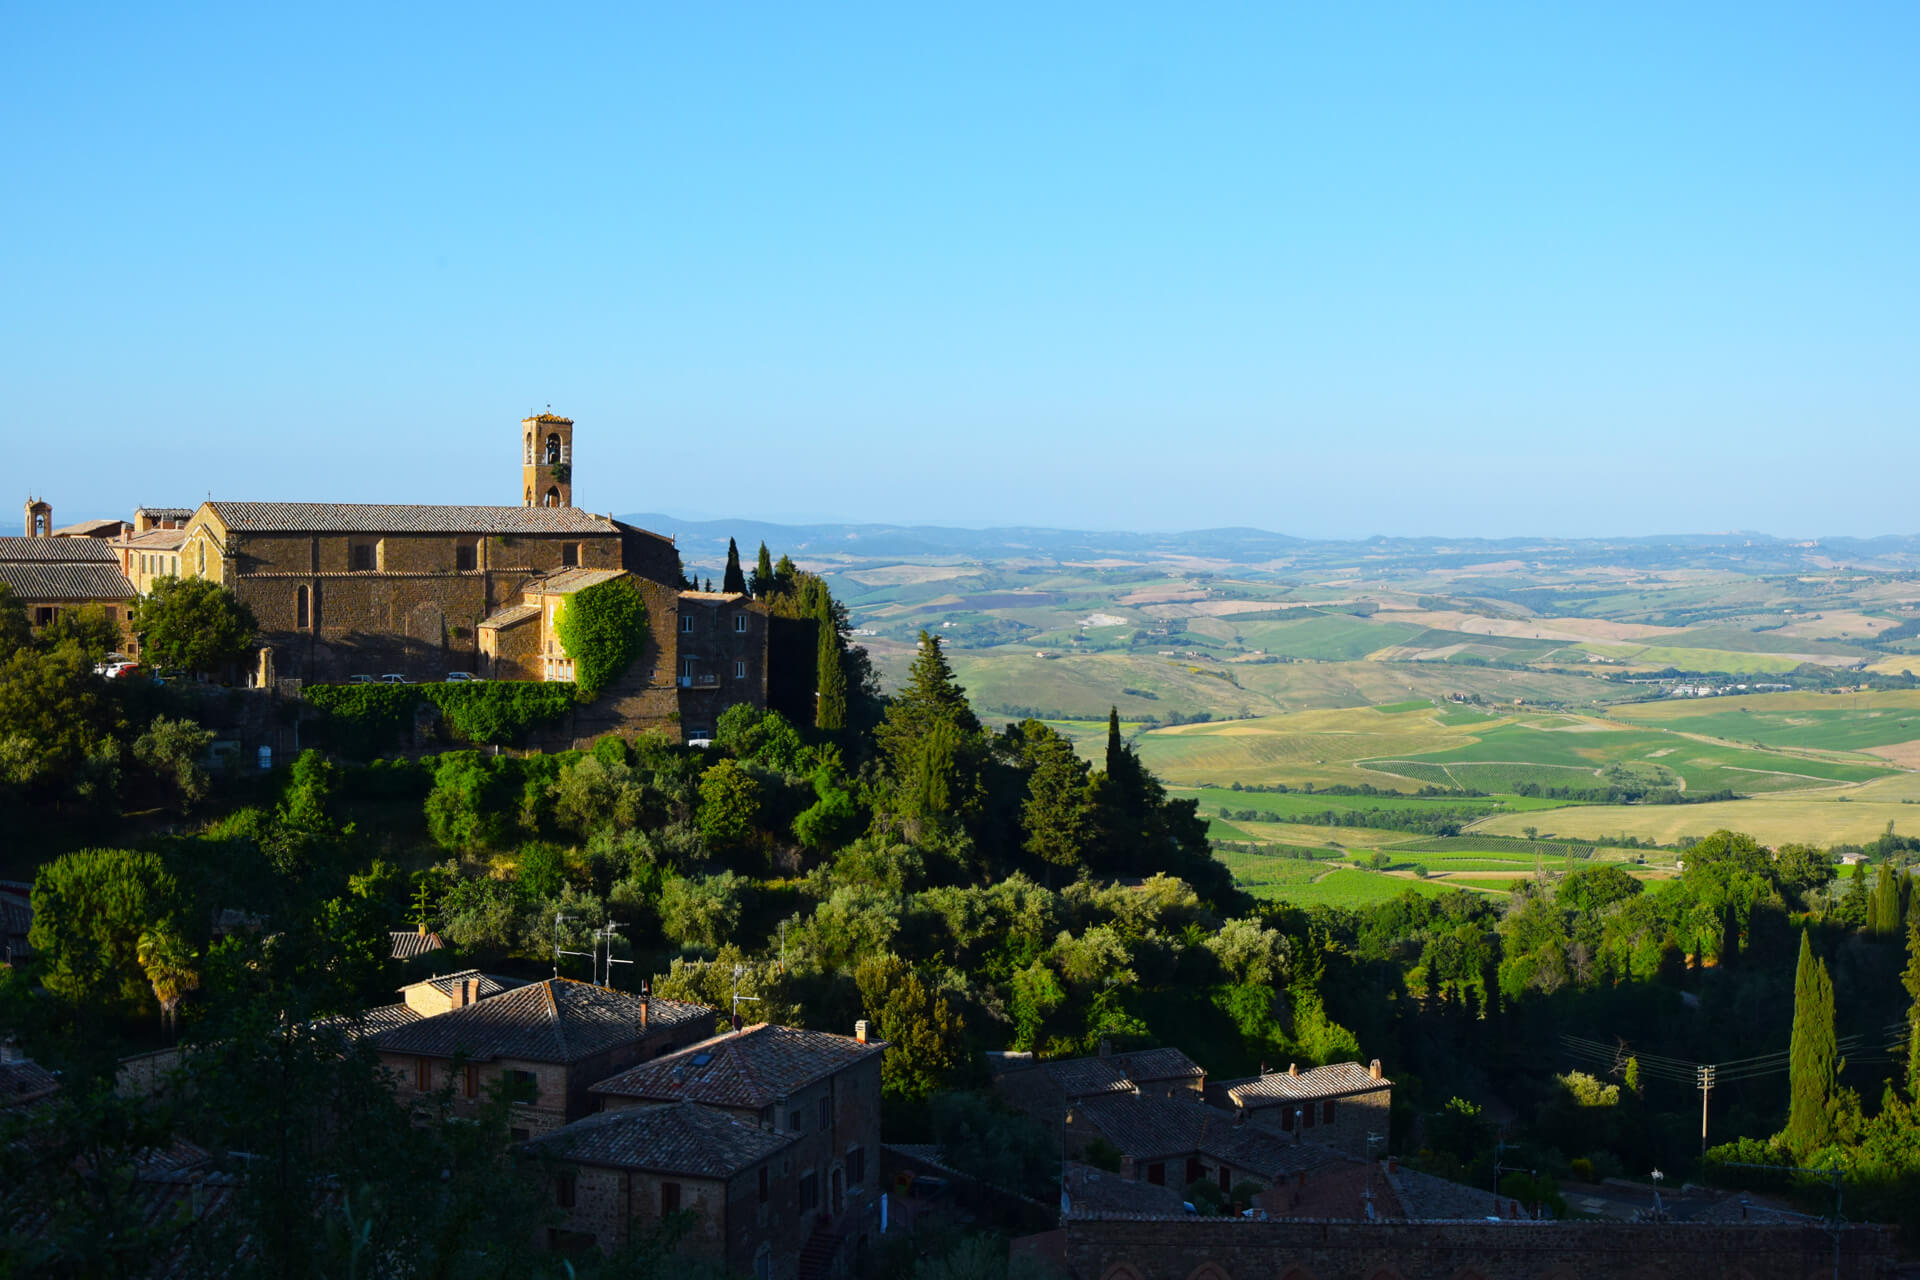 The historical town of Montalcino